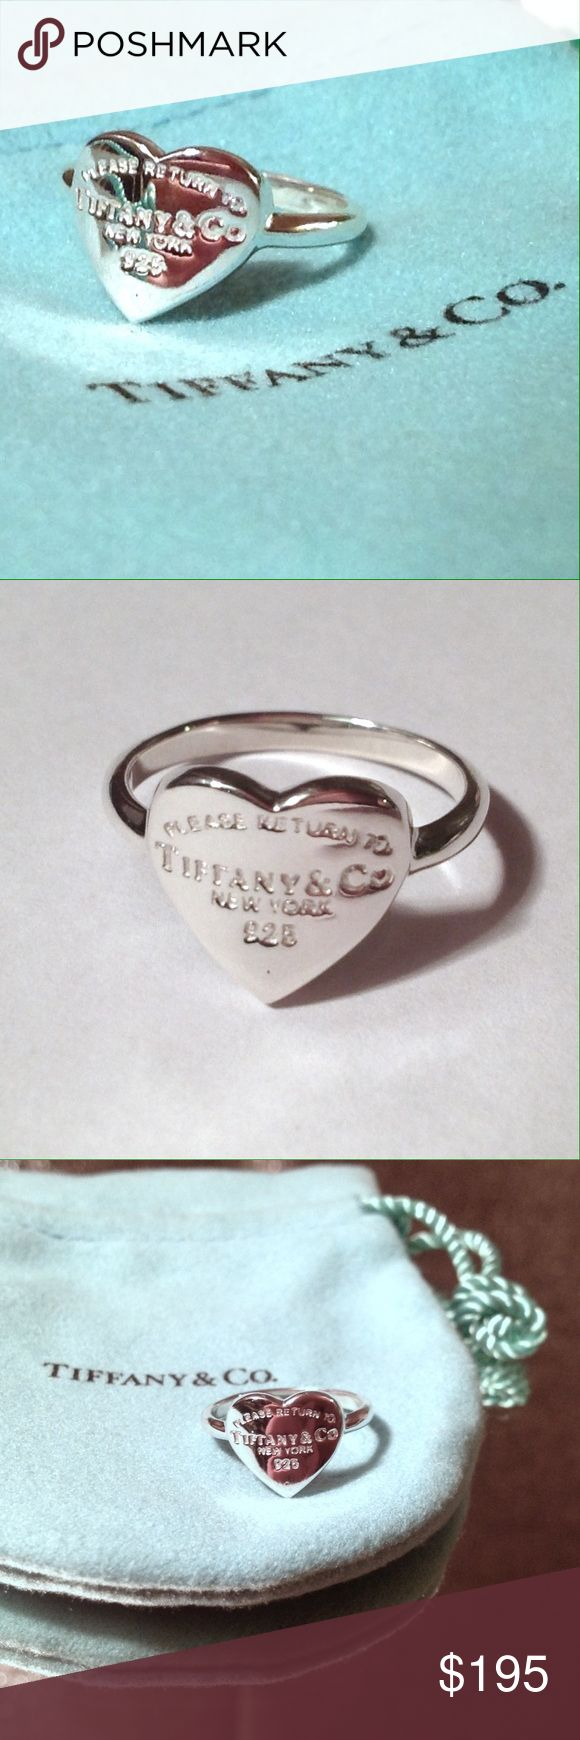 "Tiffany & Co. Heart Ring ""Return to Tiffany"" NEW Tiffany & Co - Heart Ring - Return to Tiffany's.  New Sterling Silver 925 Tiffany & Co. ring.  Heart shape with ""IF FOUND PLEASE RETURN TO TIFFANY & CO. NEW YORK"" engraved on the front. Tiffany & Co. jewelry pouch included. New - never worn. Love this style for #valentinesday it's a classic and no longer available through their website. Tiffany & Co. Jewelry Rings"